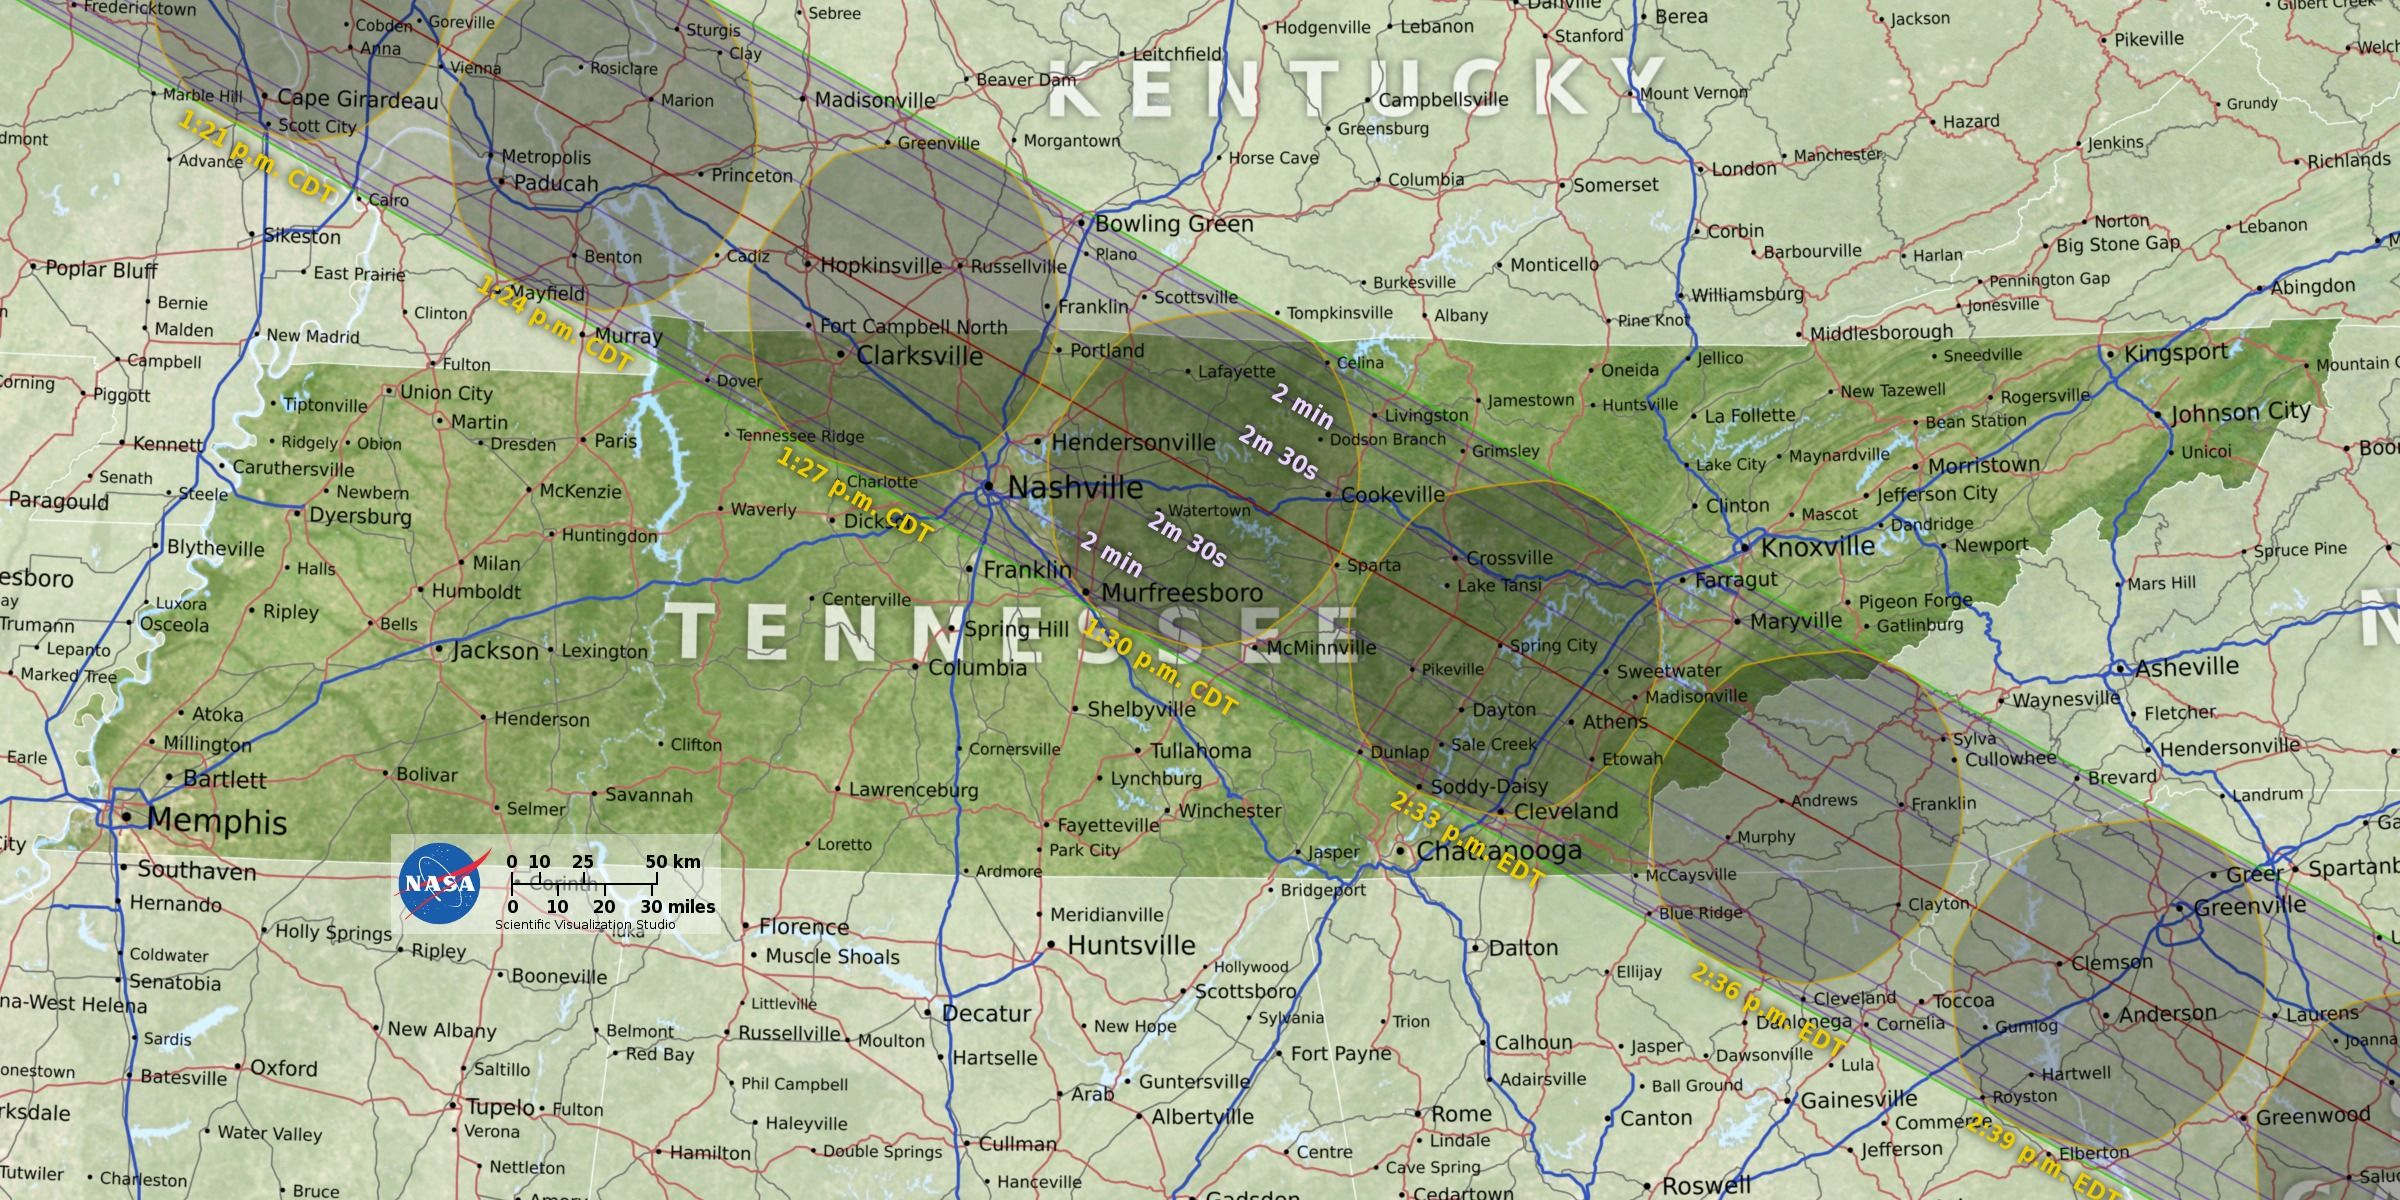 NASA Solar Eclipse Tennessee Path earth science